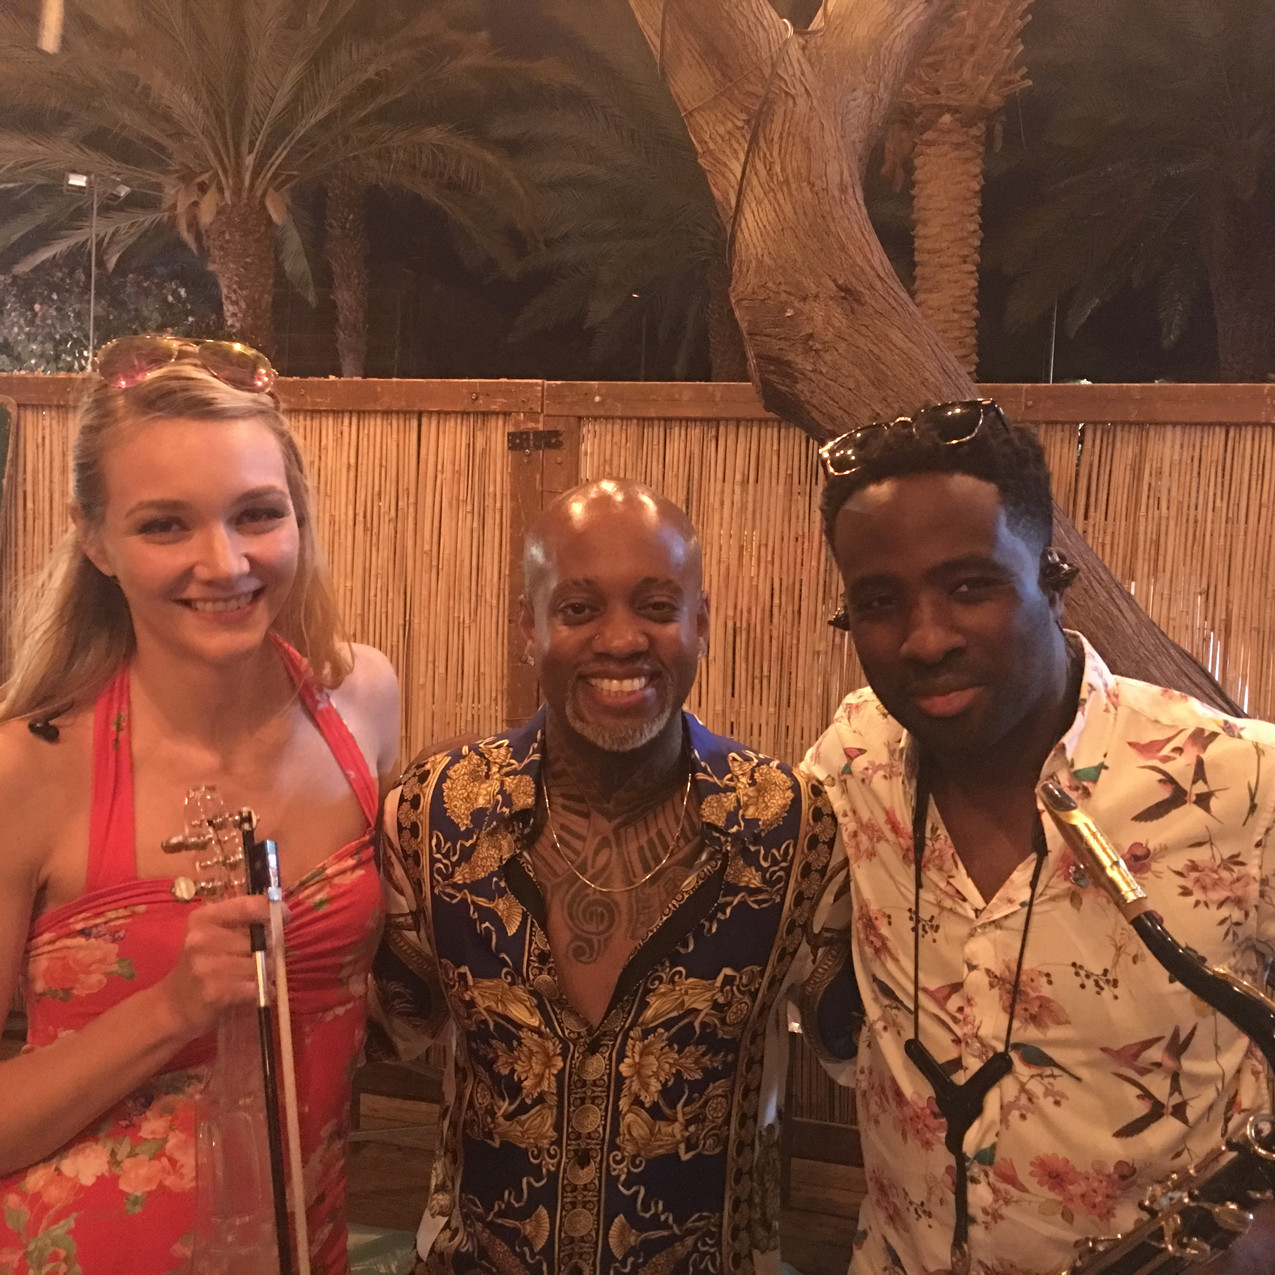 Entourage duo with Willy William